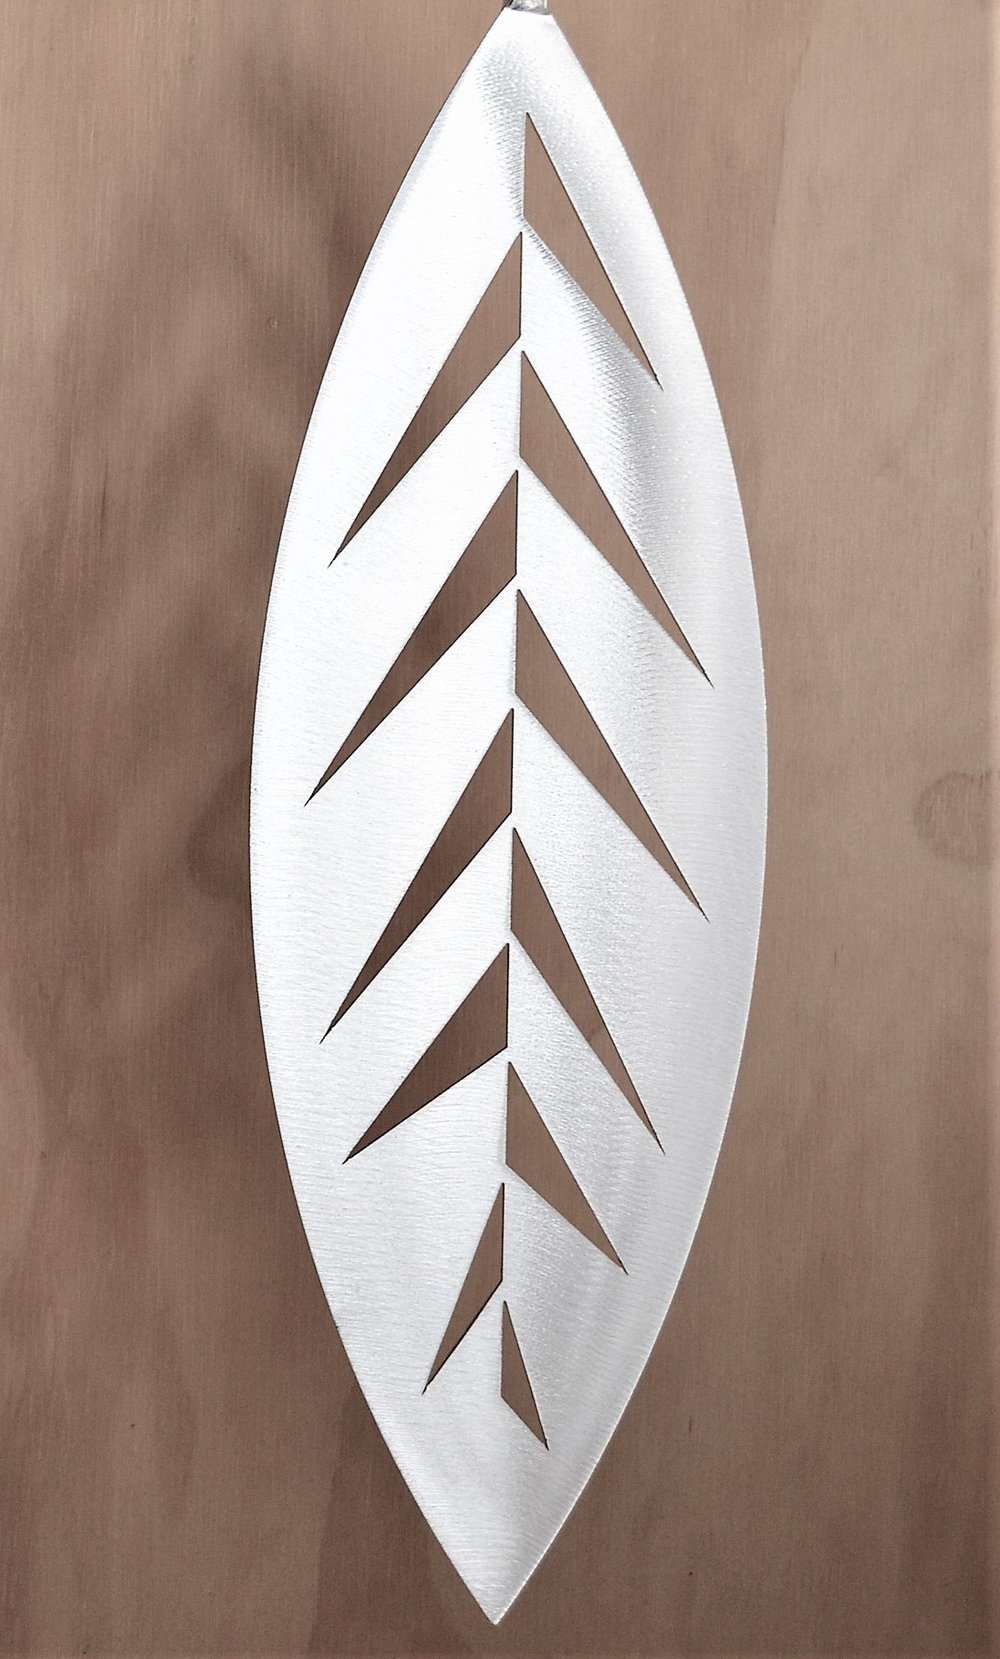 Hanging Swivel Leaf  Grounded Art NZ, aluminium, 400mm  sold